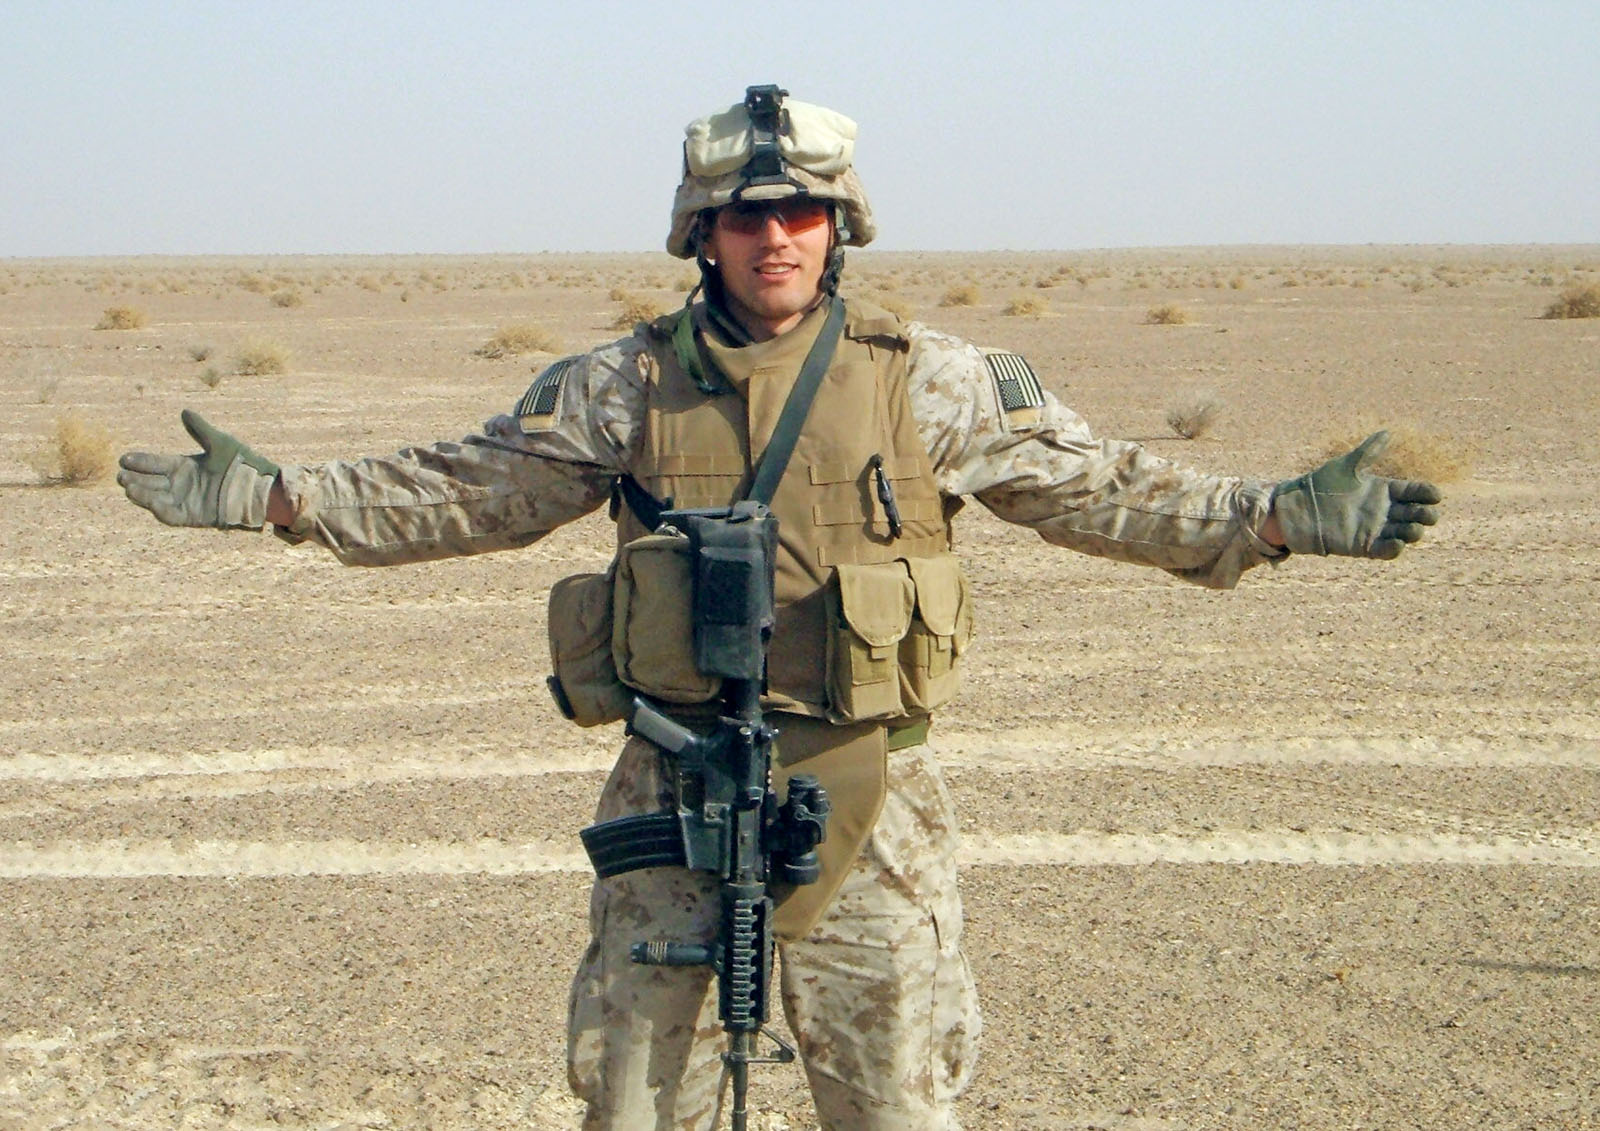 """First Lieutenant Travis Manion, 26, of Doylestown, PA, assigned to 1st Reconnaissance Battalion, 1st Marine Division, I Marine Expeditionary Force, based in Camp Pendleton, CA, was killed by sniper fire on April 29, 2007, while fighting against an enemy ambush in Anbar Province, Iraq. He is survived by his father, Colonel Tom Manion, mother Janet Manion, and sister Ryan Borek.  According to Manion's sister, Ryan, the workout is comprised of some of her brother's favorite exercises. """"This WOD was very deliberate in the way it was put together."""" She serves as president of the  Travis Manion Foundation , which provides resources for veterans and hosts community service projects. """"My brother was a wrestler at the Naval Academy and had very strong legs, so this WOD is all dedicated to legs,"""" she says."""